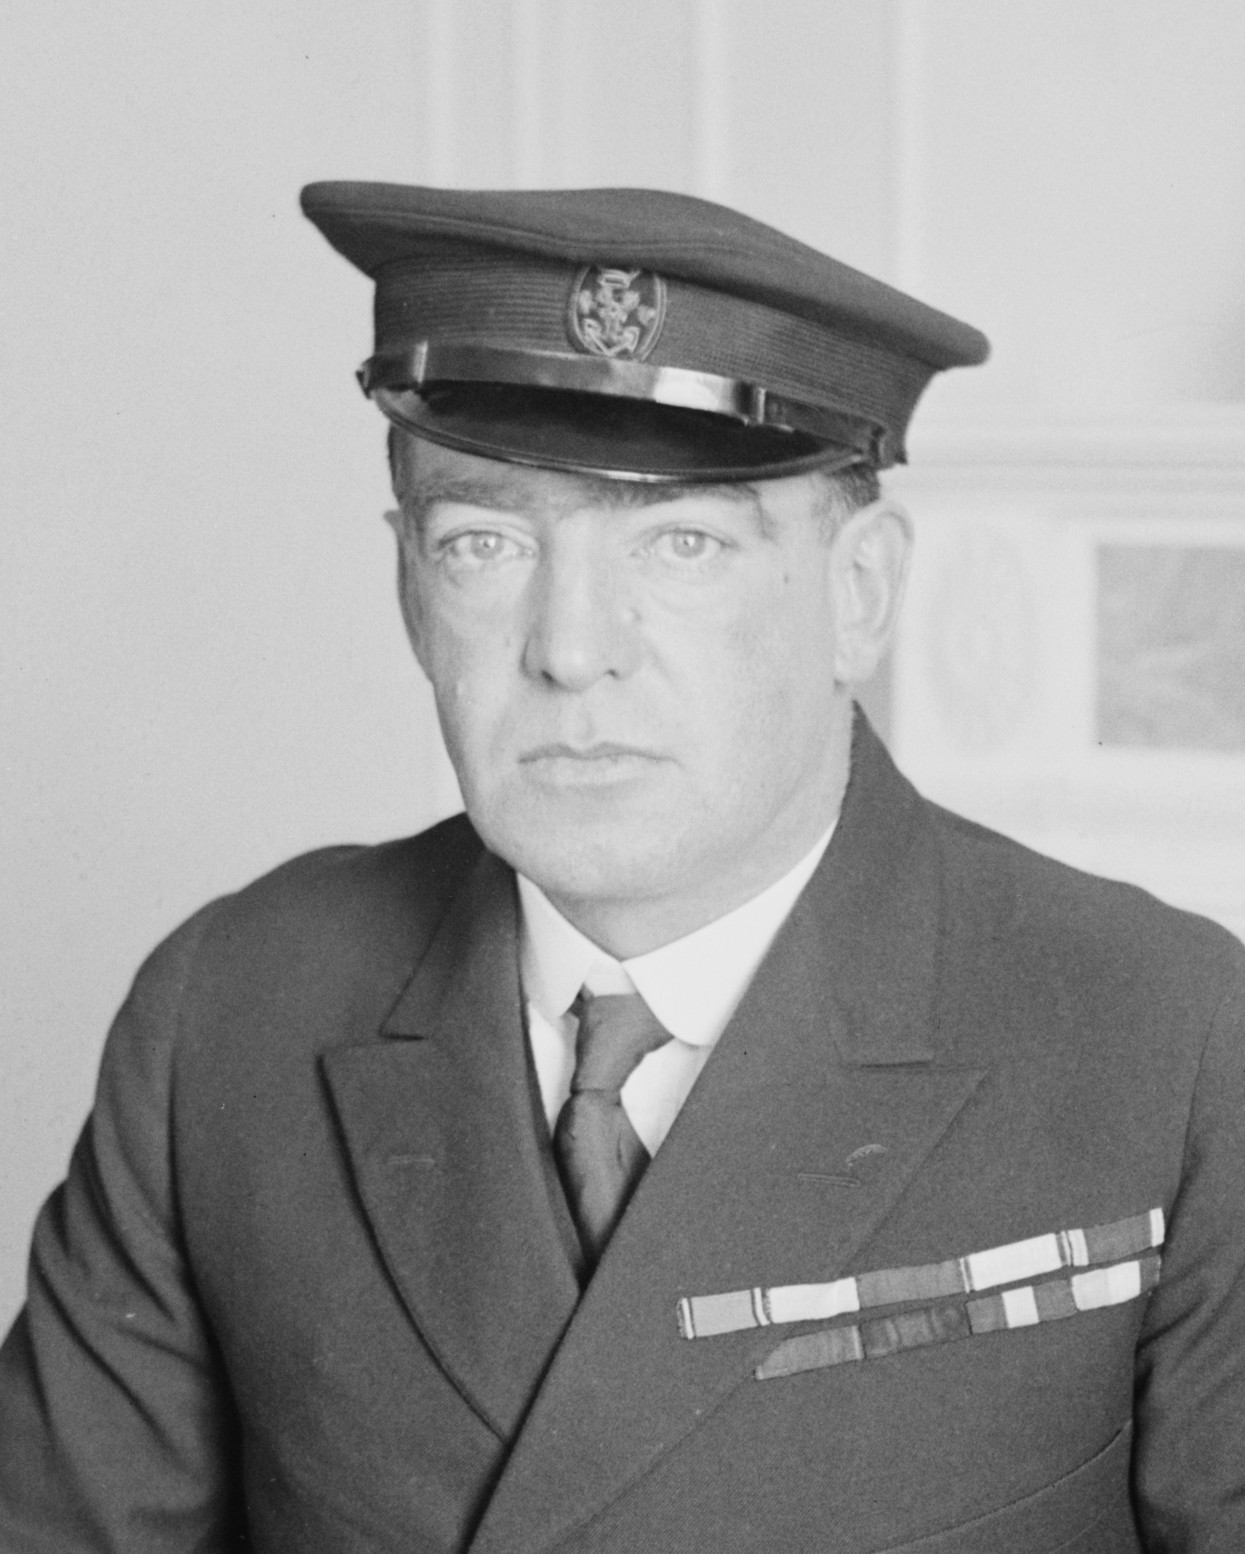 Shackleton in 1917